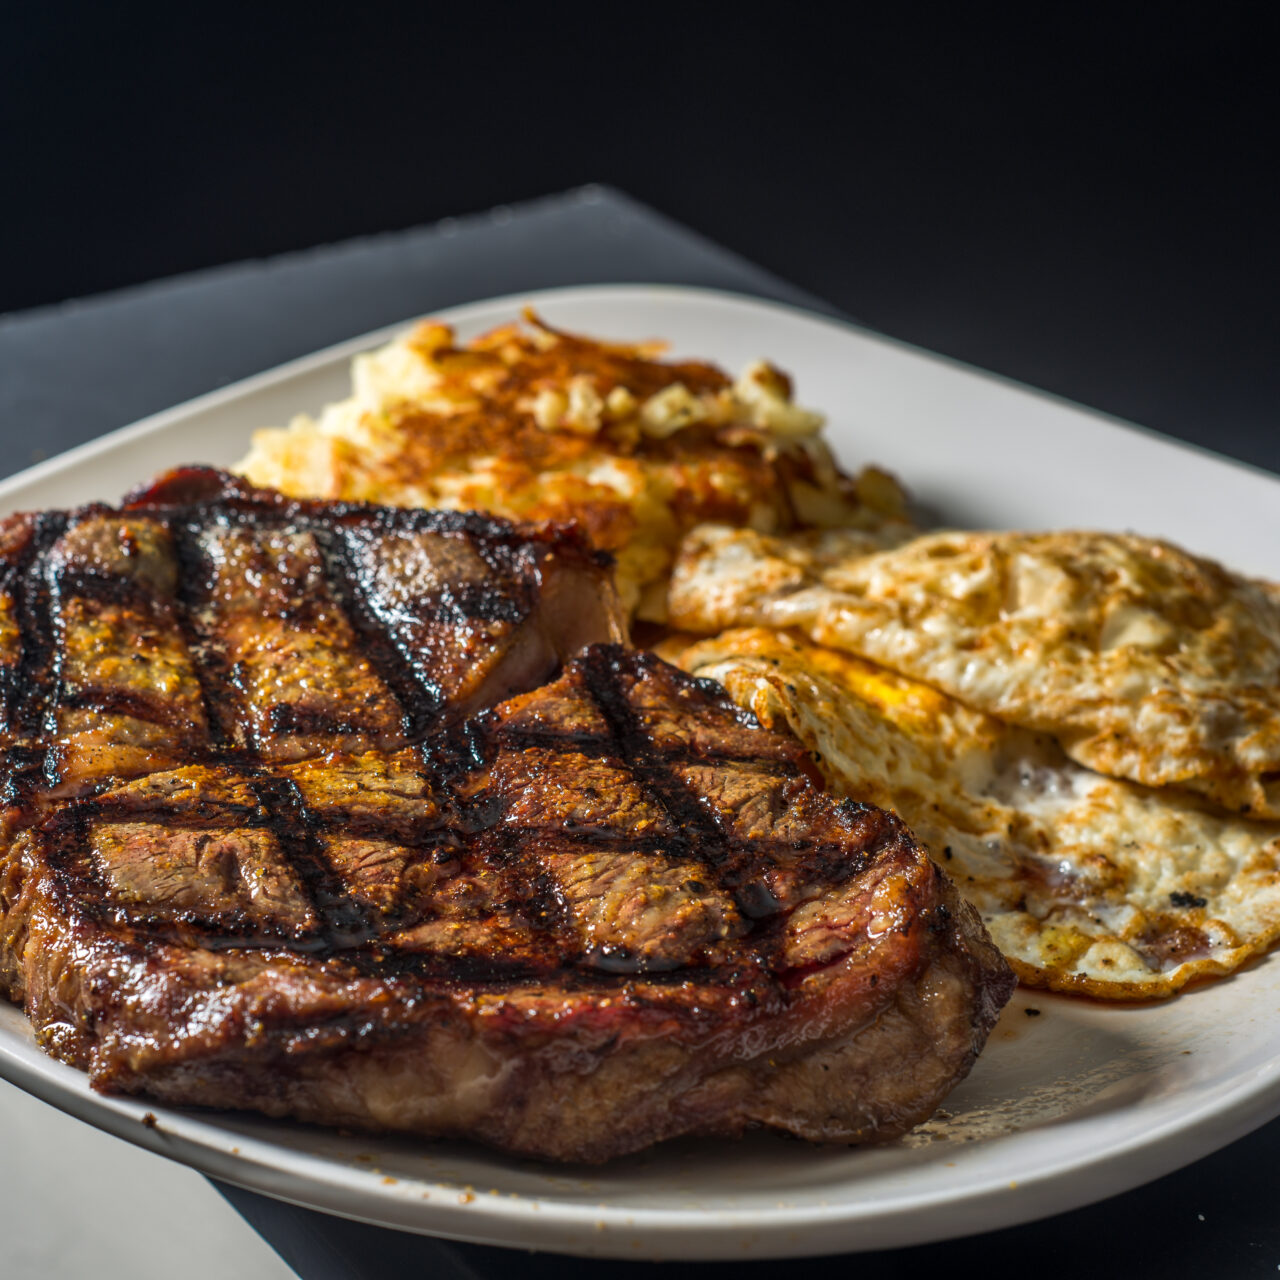 Grate Steak and Eggs